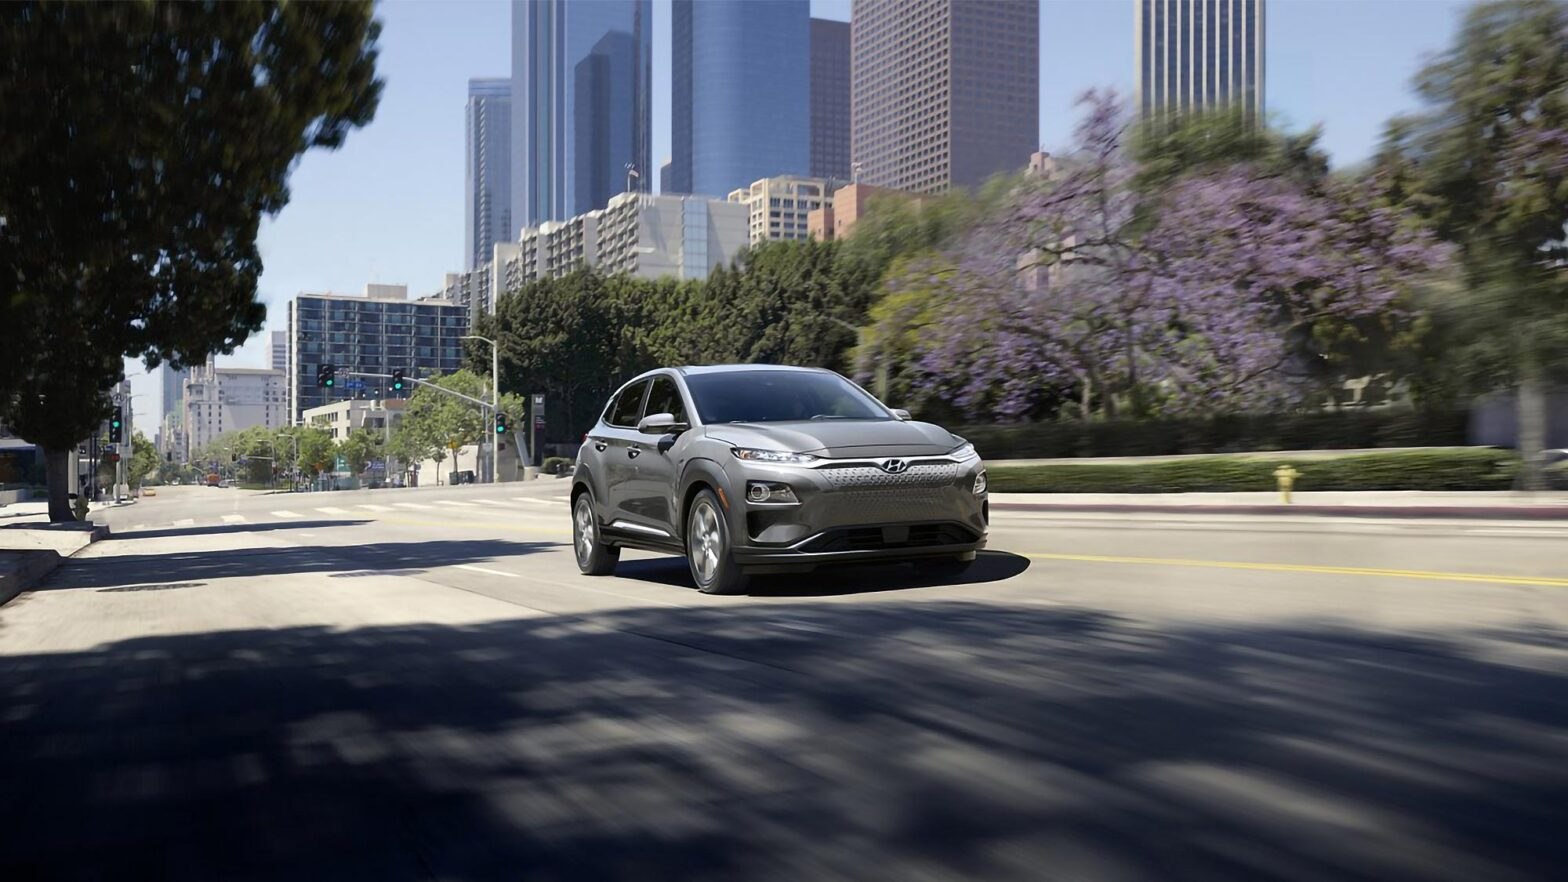 Best New Cars For City Driving In 2021